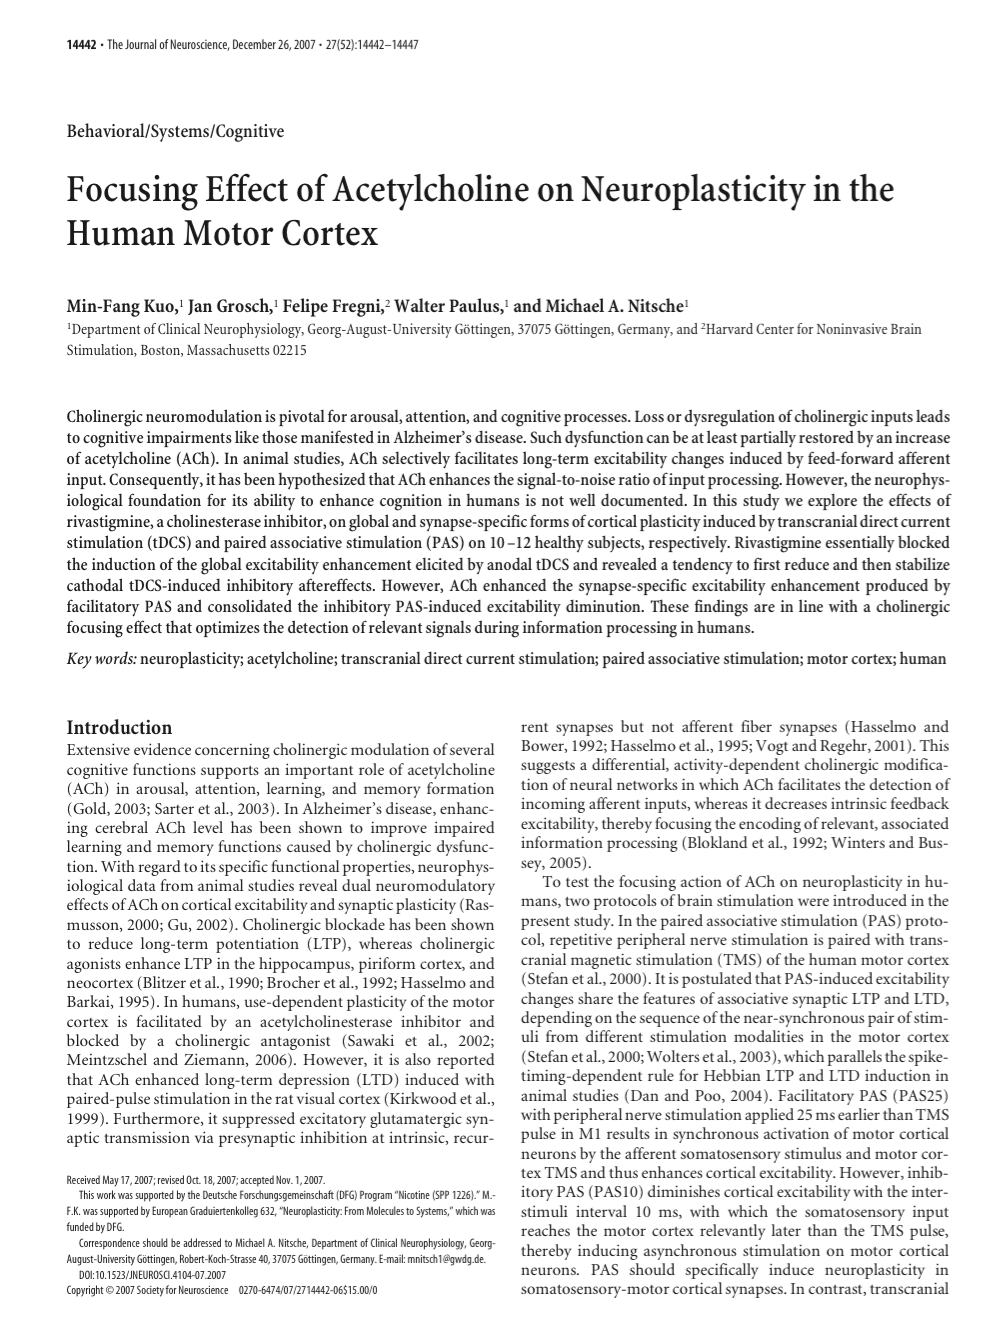 Focusing Effect of Acetylcholine on Neuroplasticity in the Human Motor Cortex